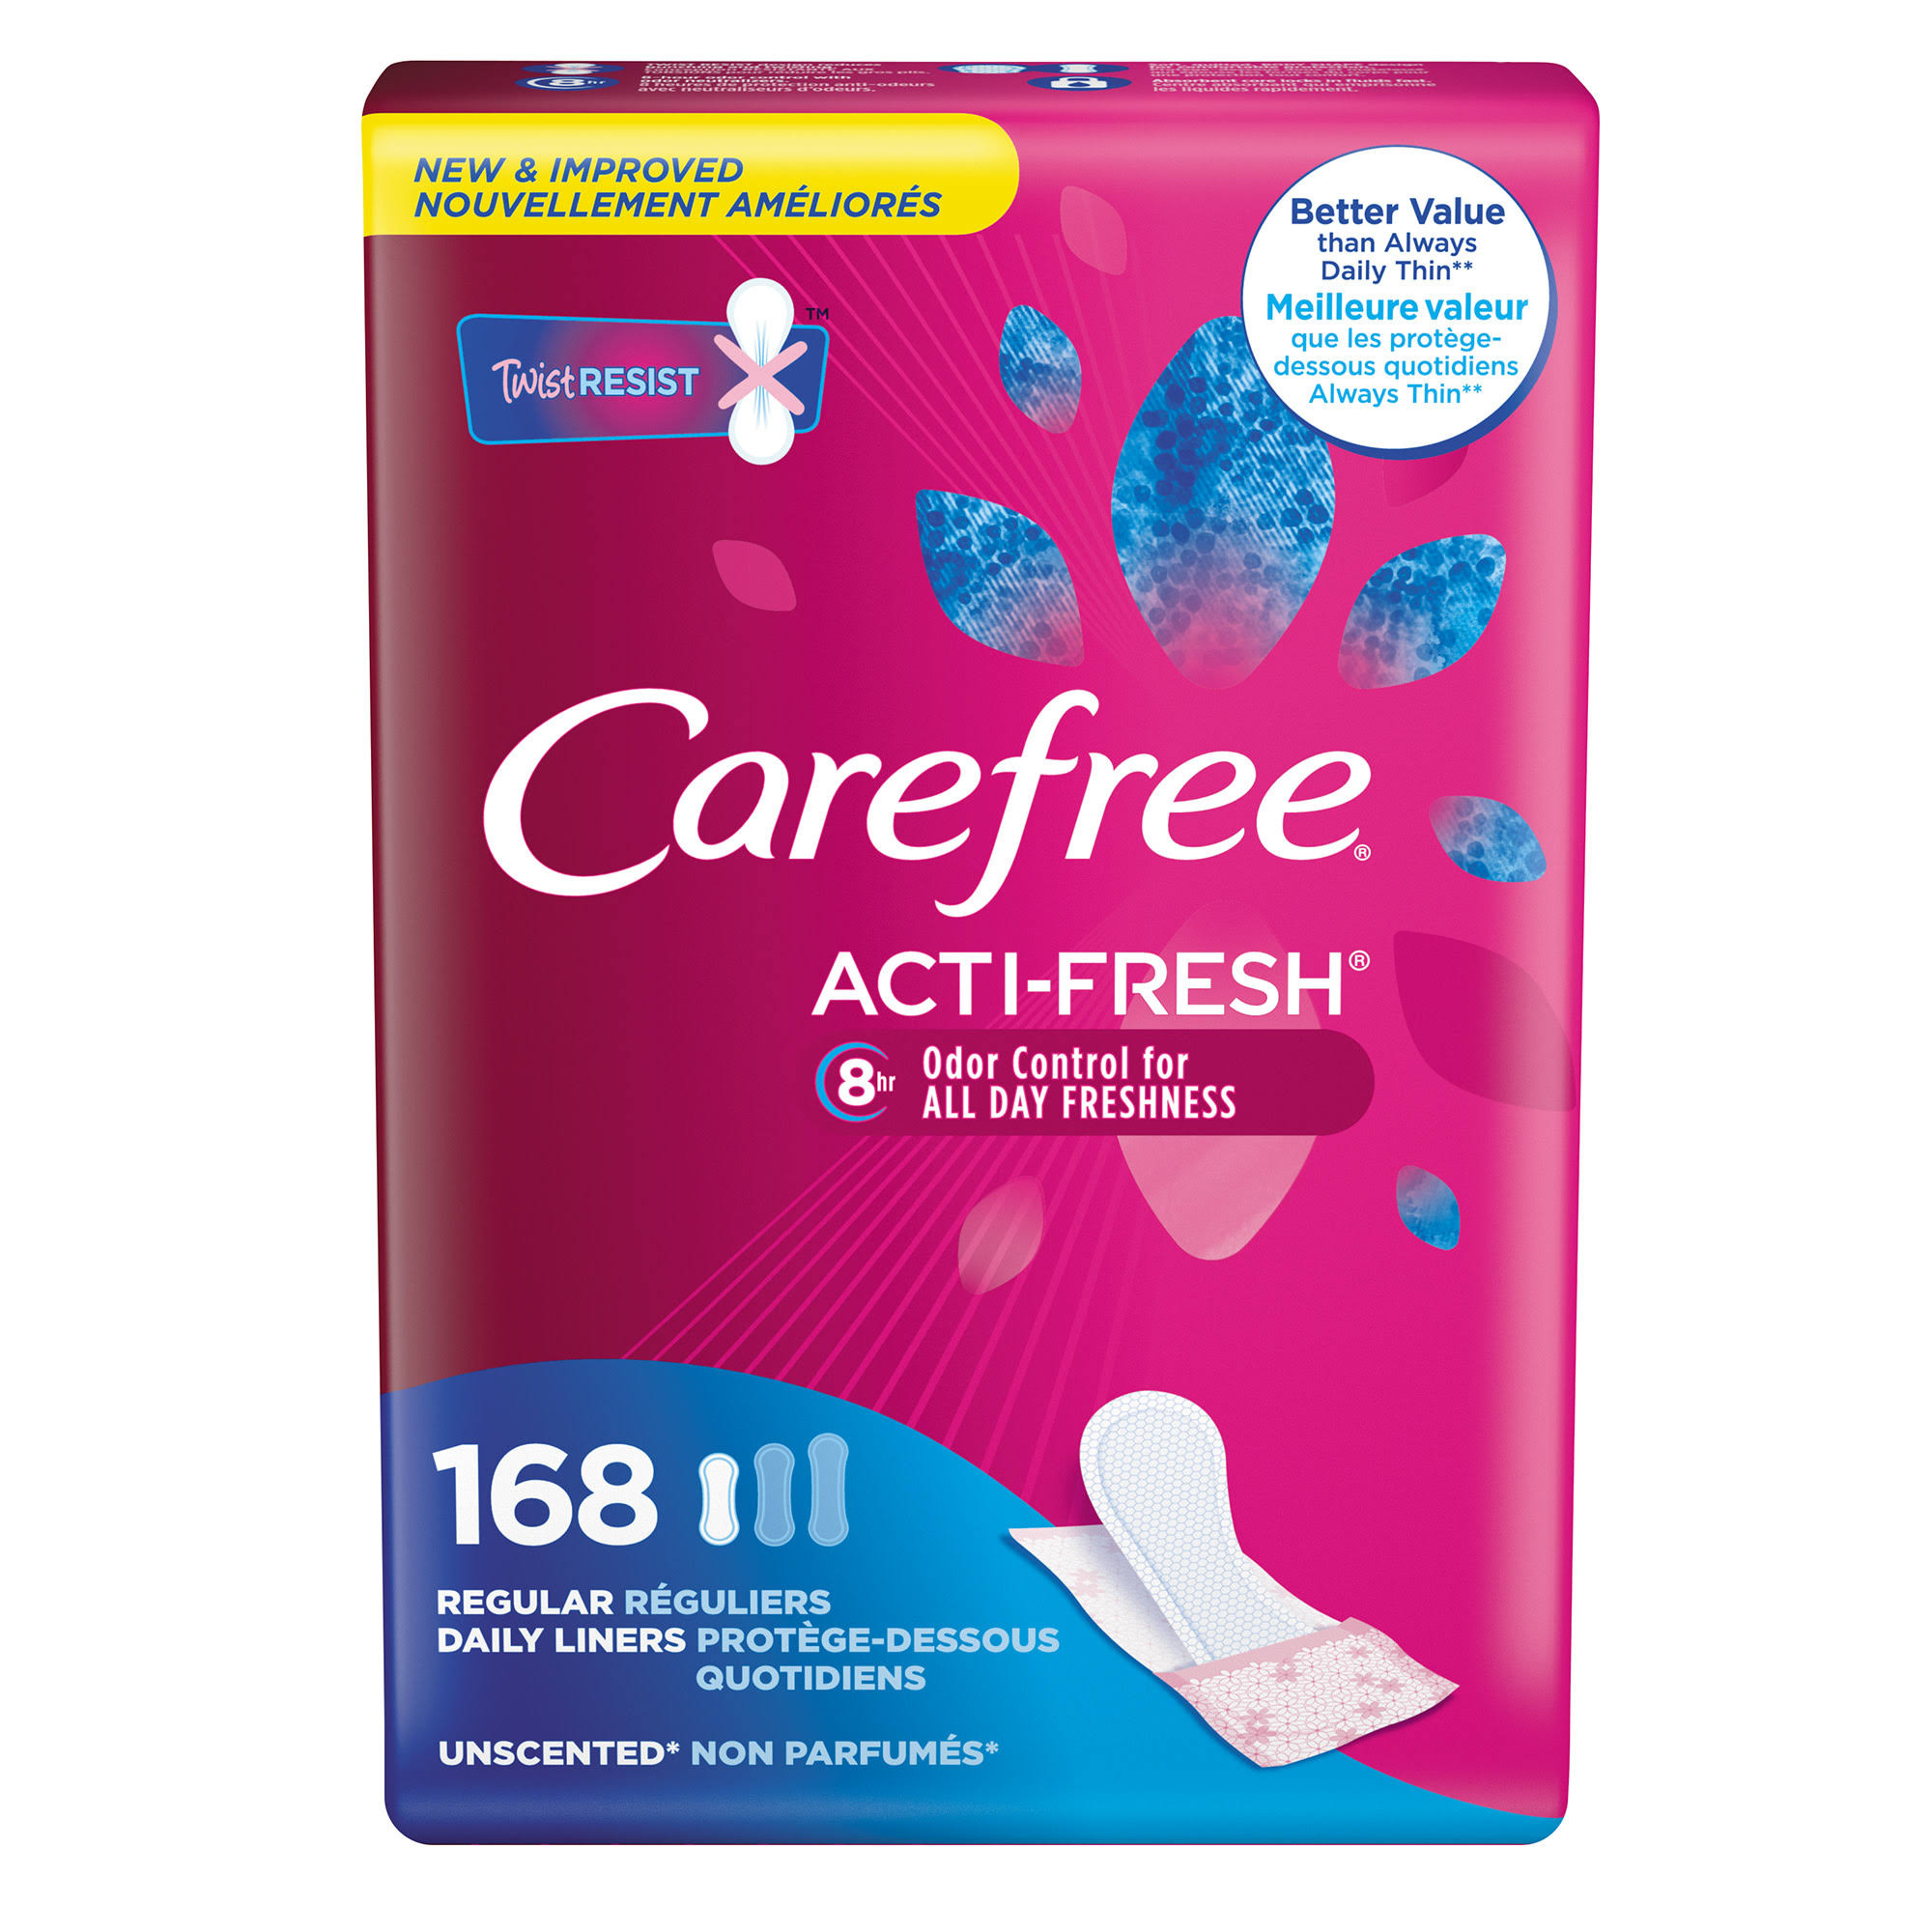 Carefree Acti-Fresh Liners, Daily, Regular, Unscented - 168 liners